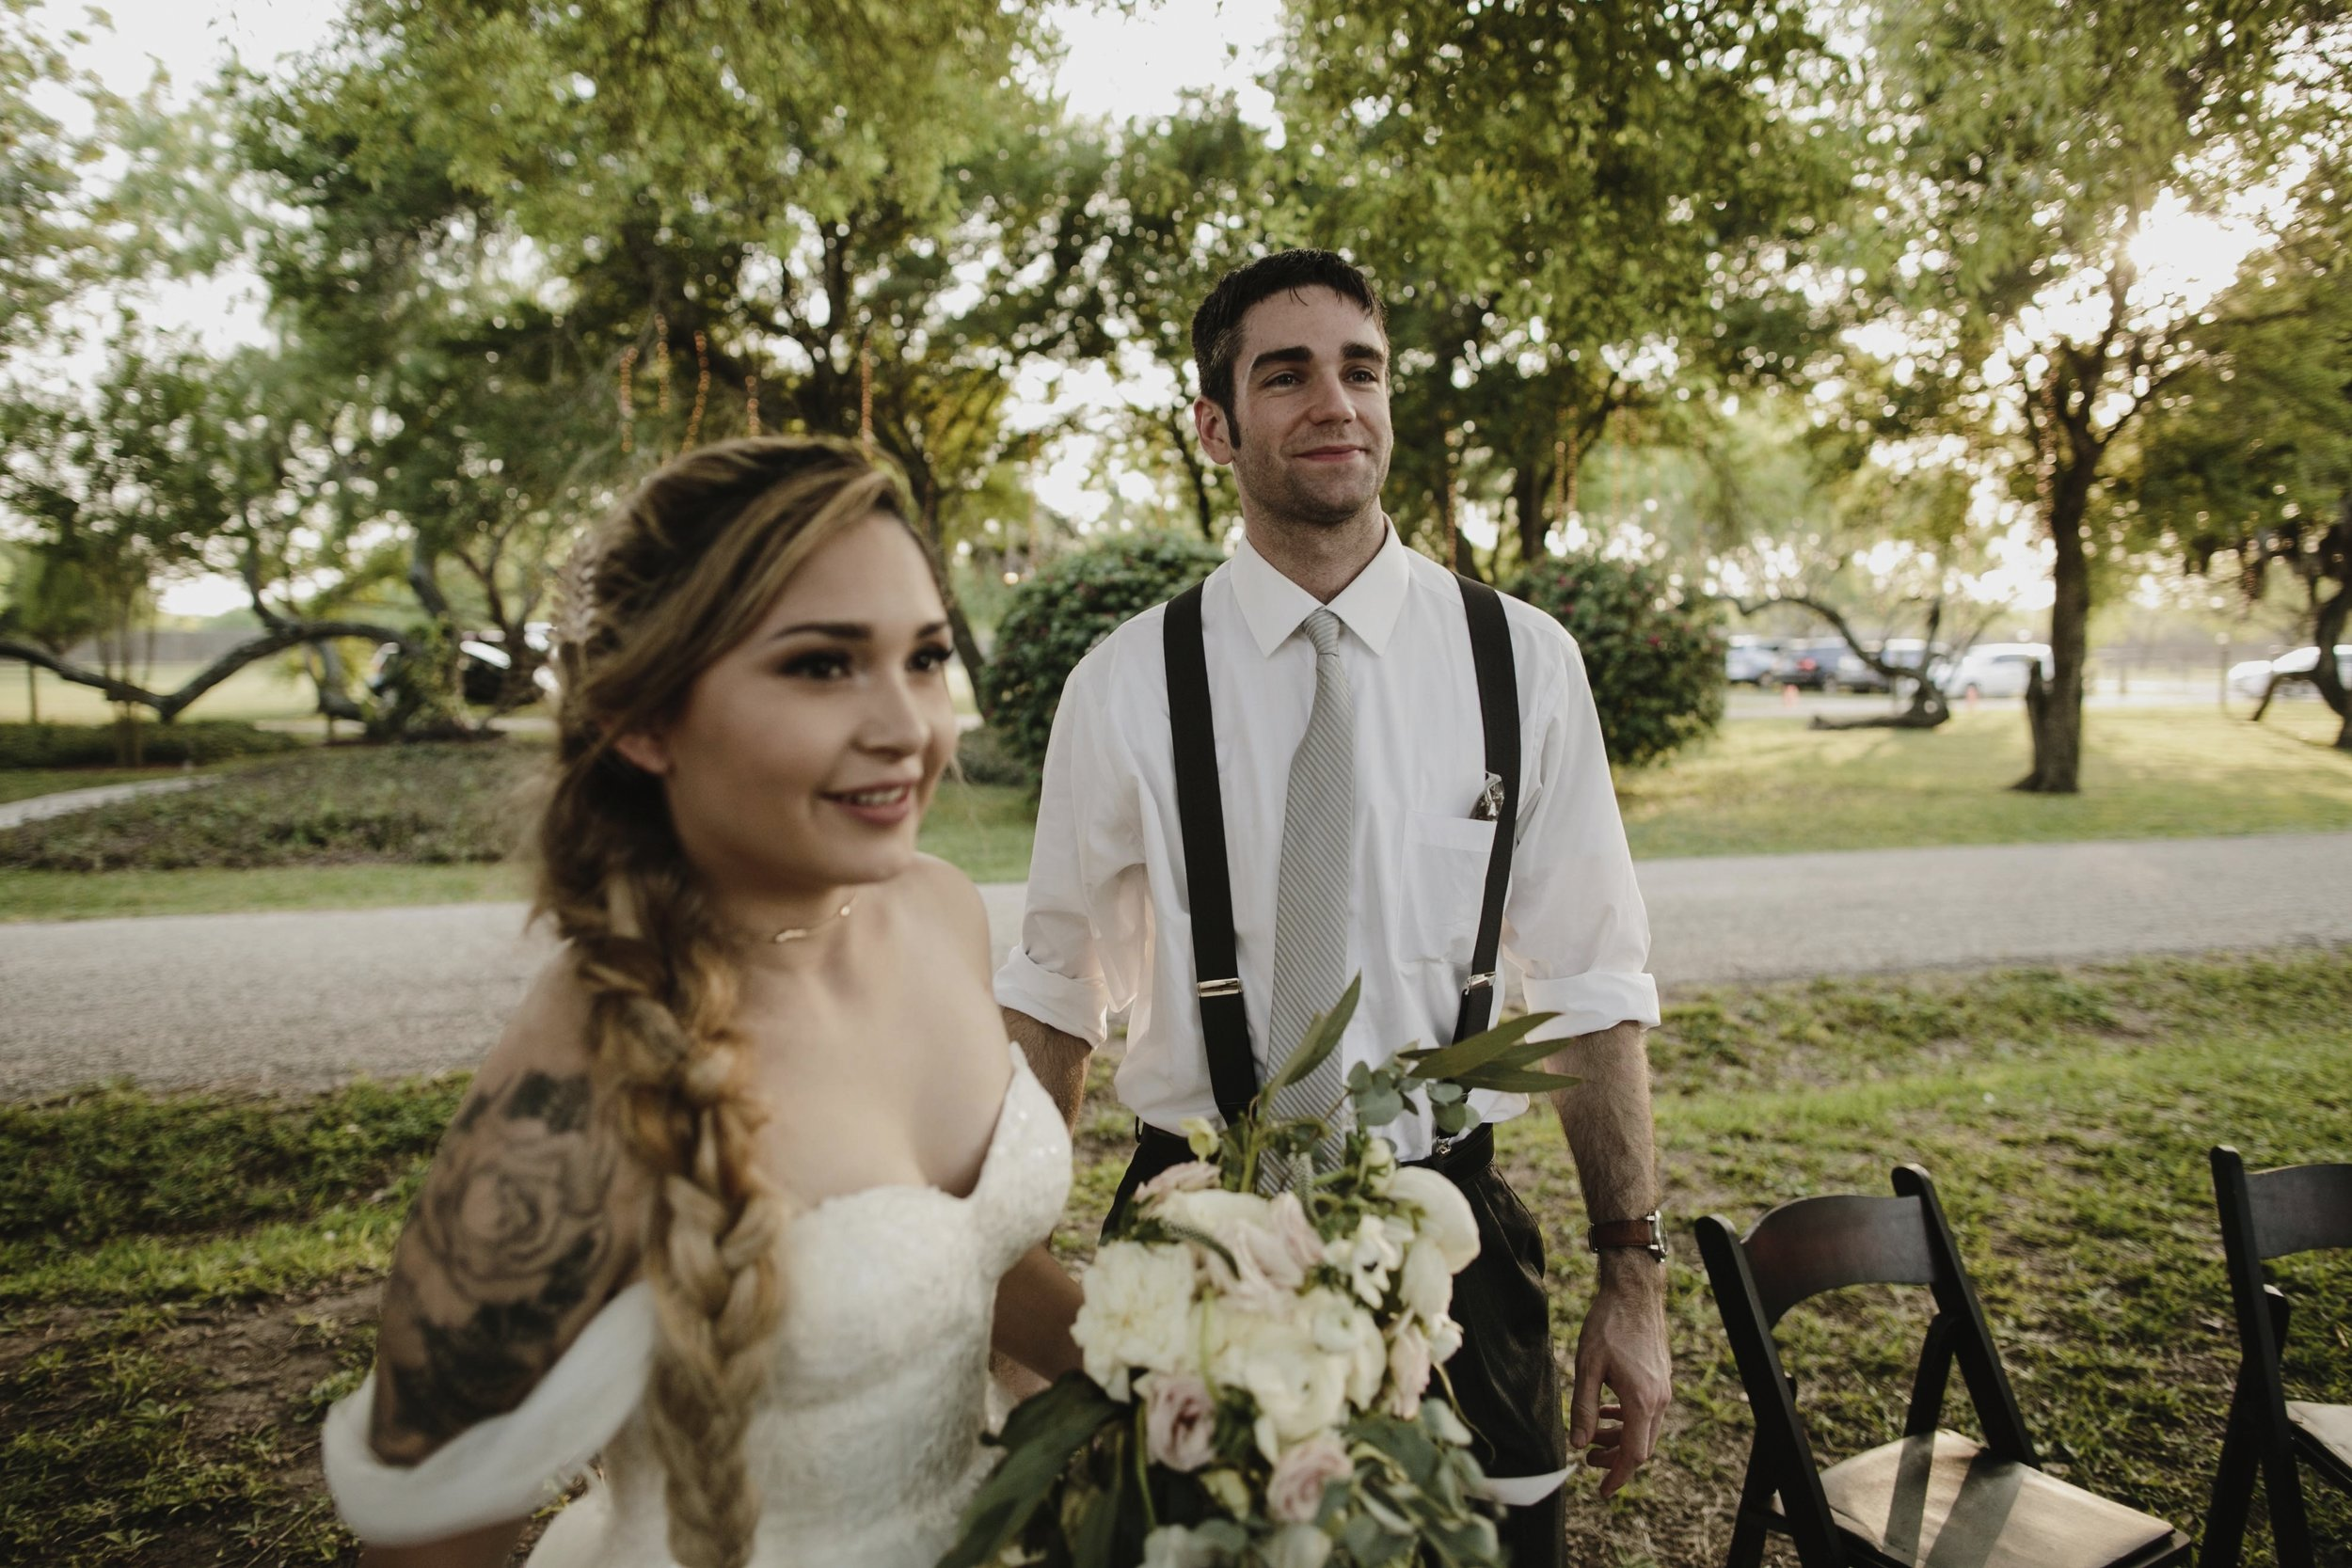 alfonso_flores_destination_wedding_photography_rancho_la_pergola_brownsville_texas70.jpg